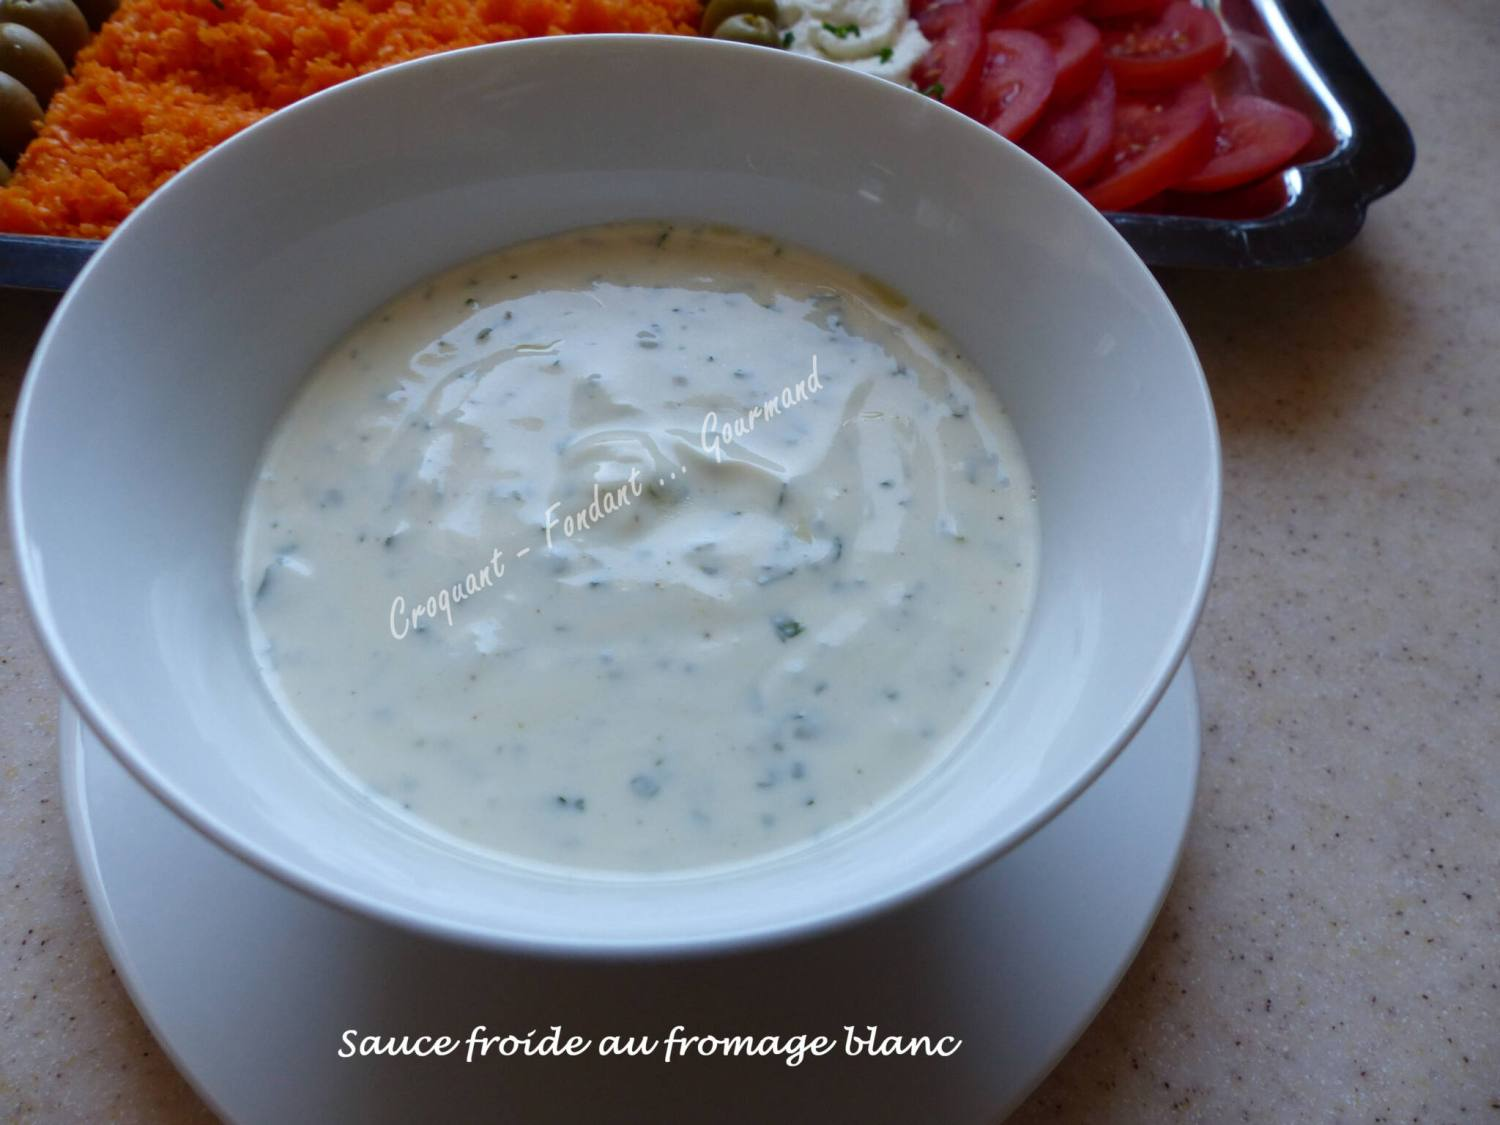 Sauce froide au fromage blanc P1010745